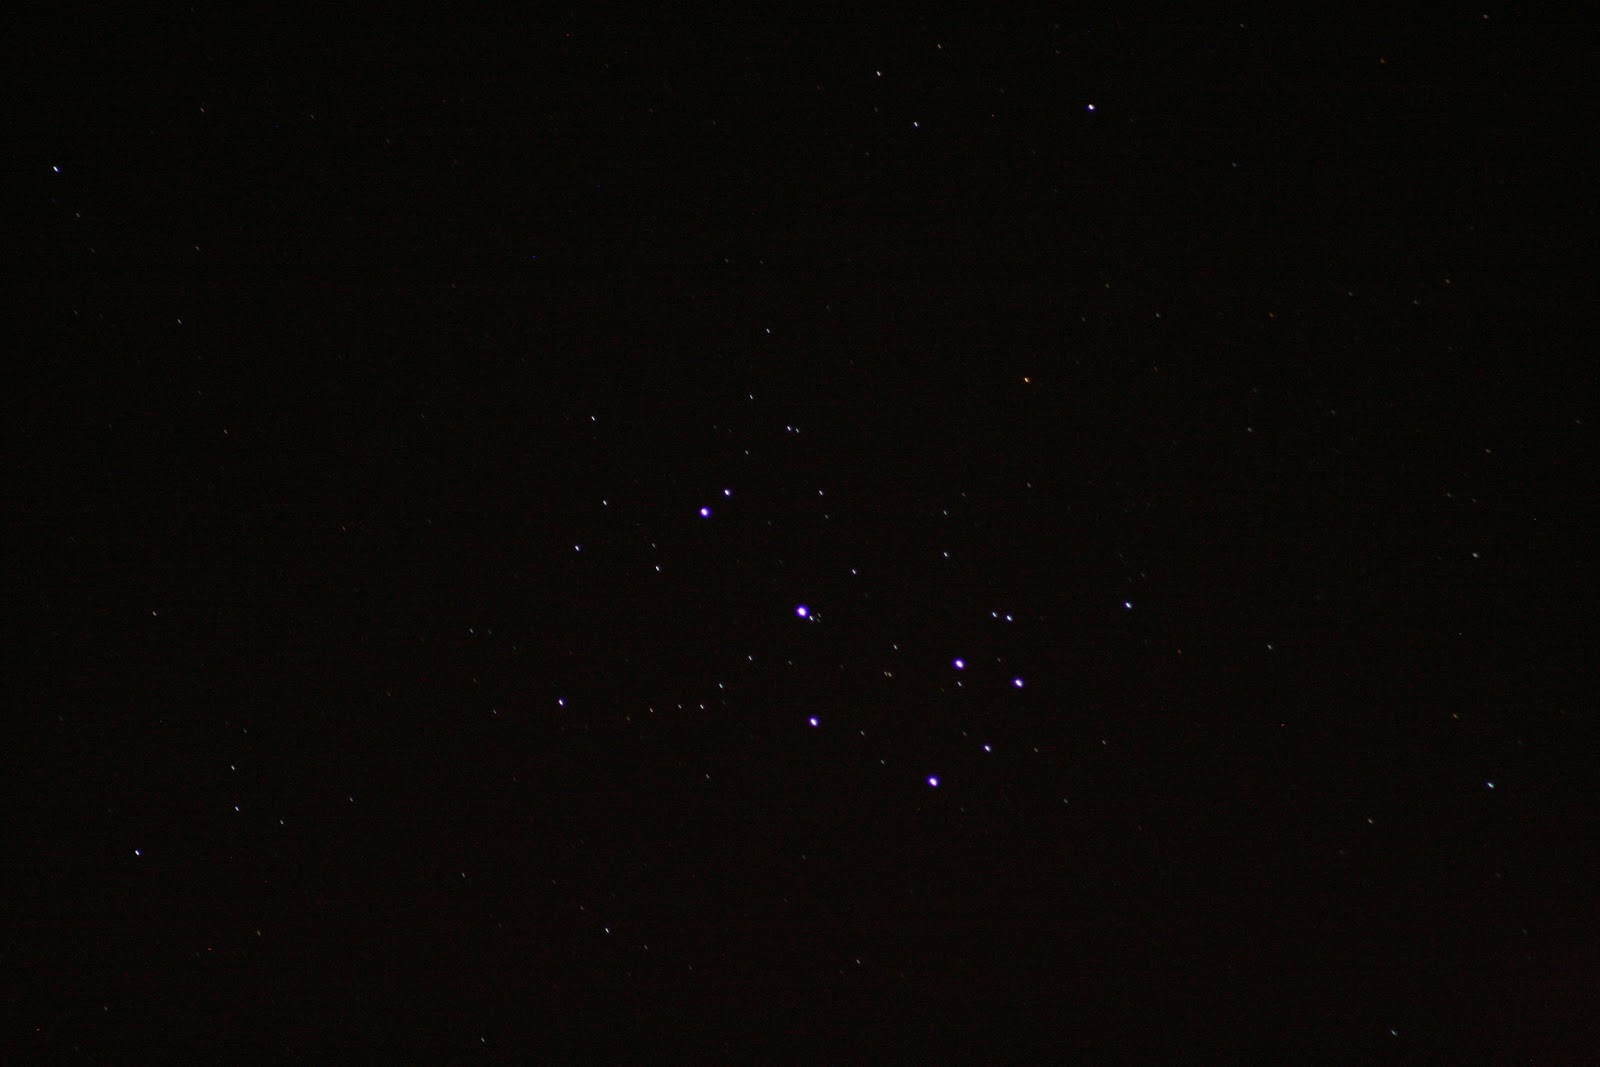 Pleiades with Canon Digital Rebel XT 300mm